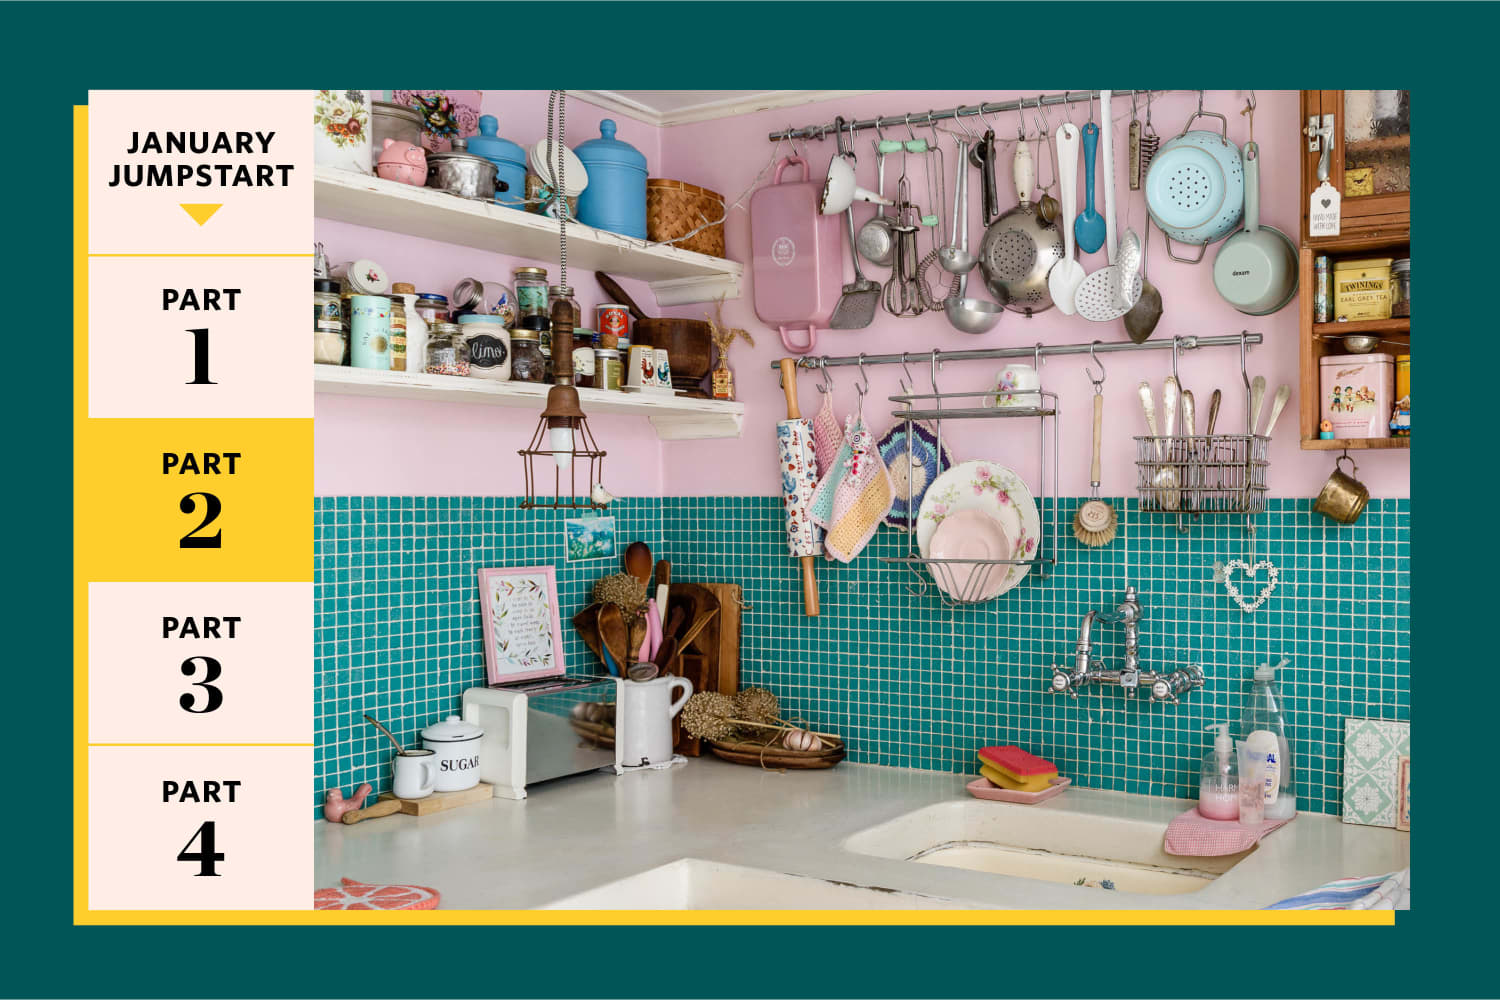 5 Easy Steps to Deal with All Your Kitchen *Stuff* Problems — Once and for All